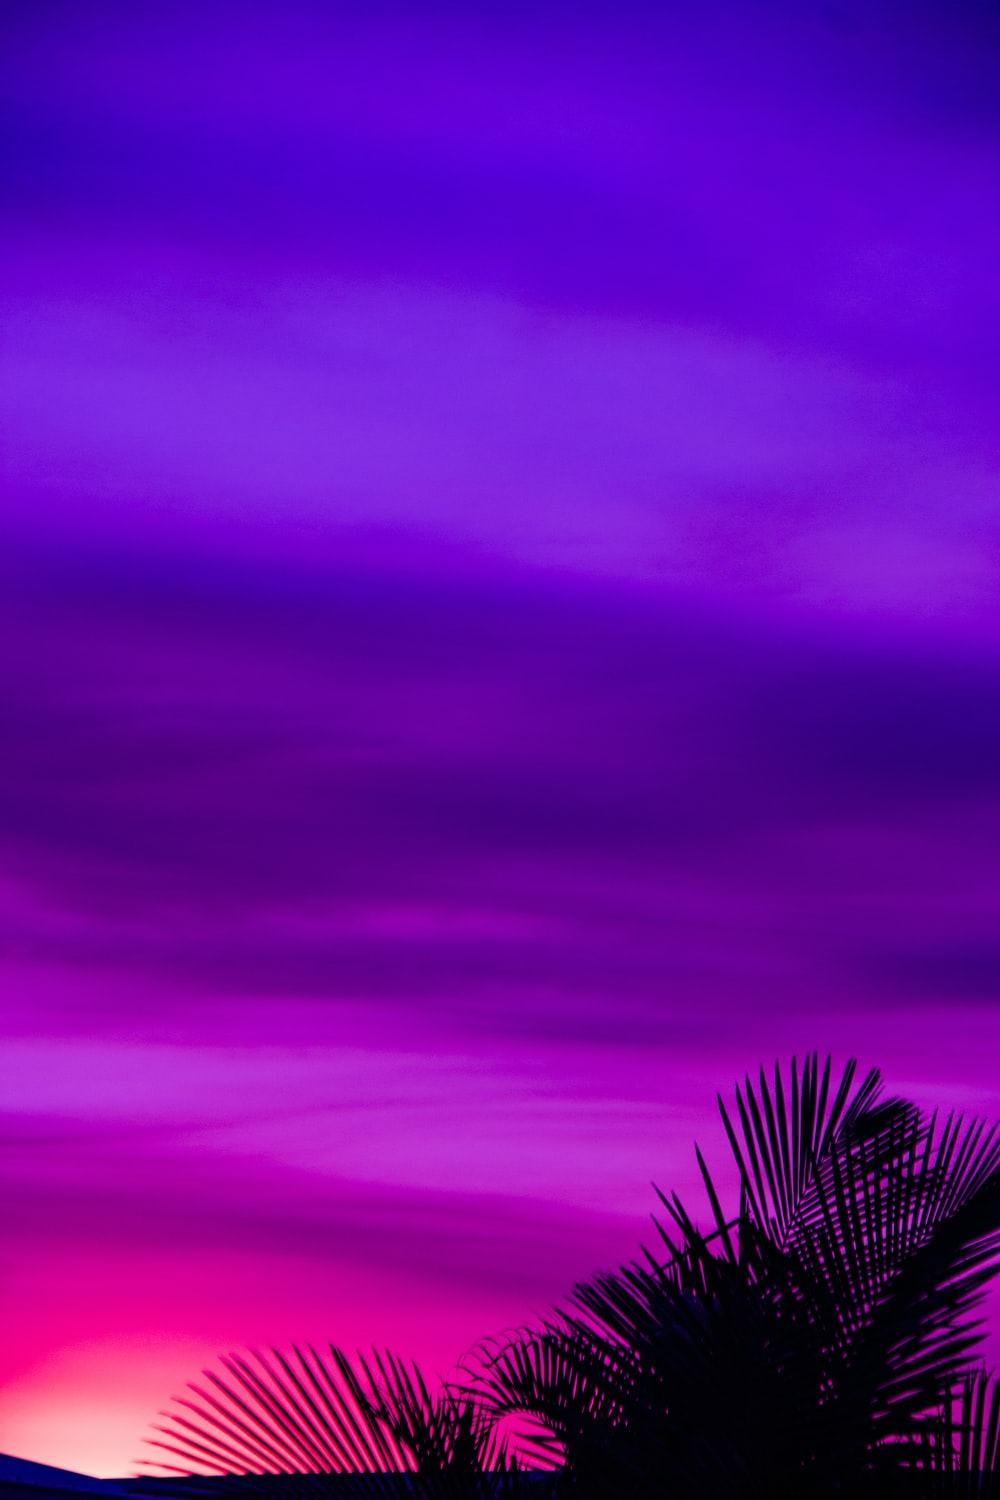 Purple Wallpaper Pictures   Download Free Images on Unsplash